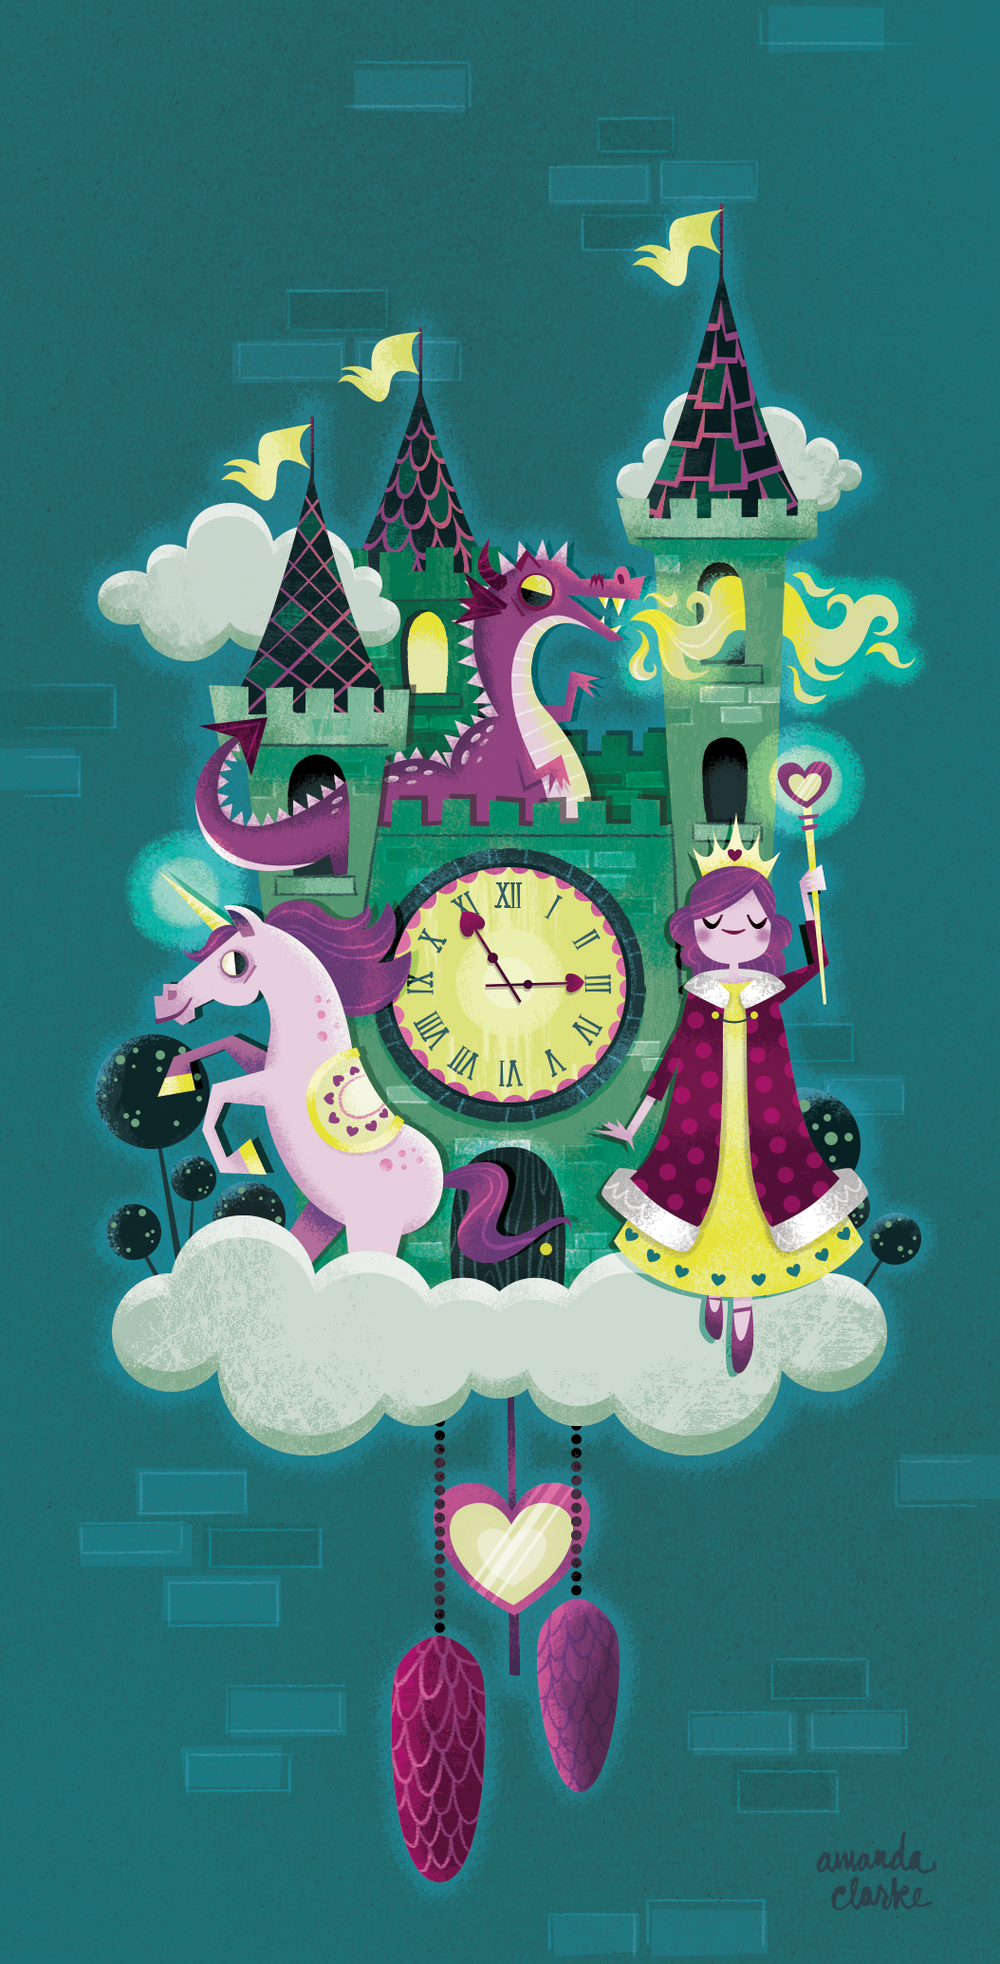 Personal piece inspired by castles and clocks.